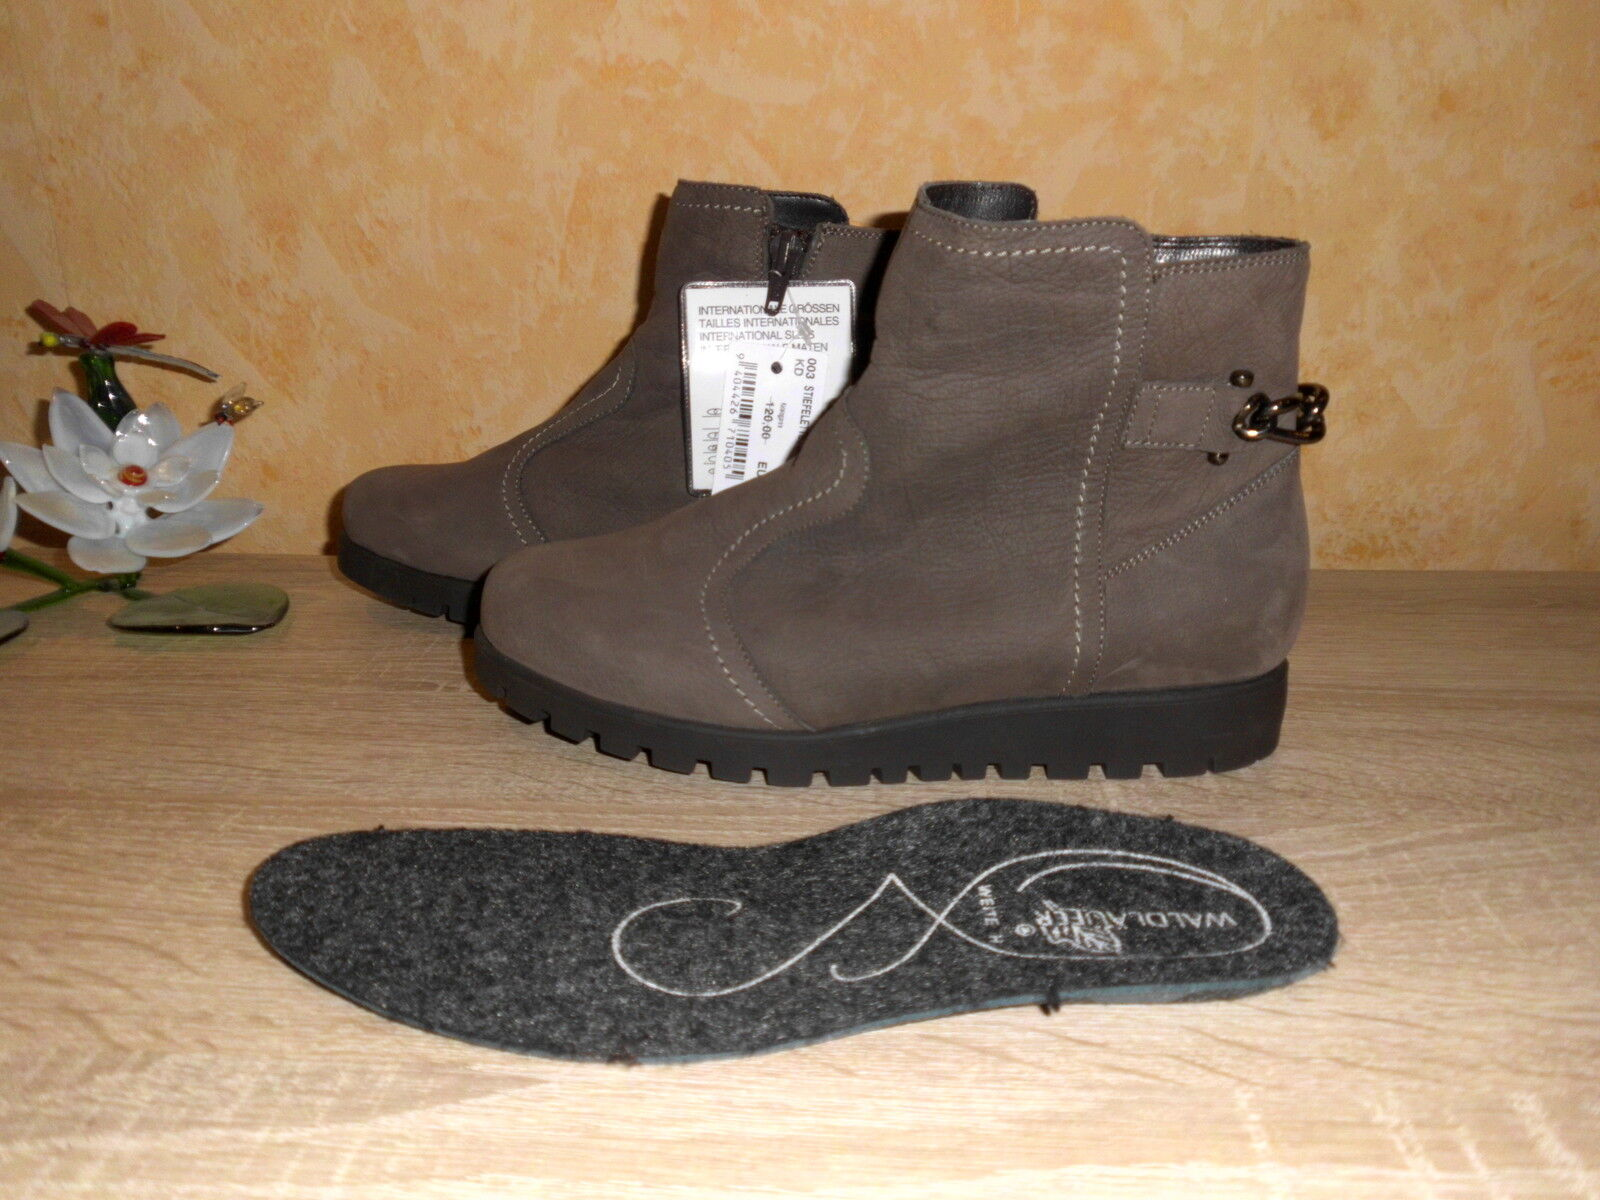 Ranger Ankle Boot NEW Size 4 37 H IN TAUPE & Nubuck for Loose Inserts